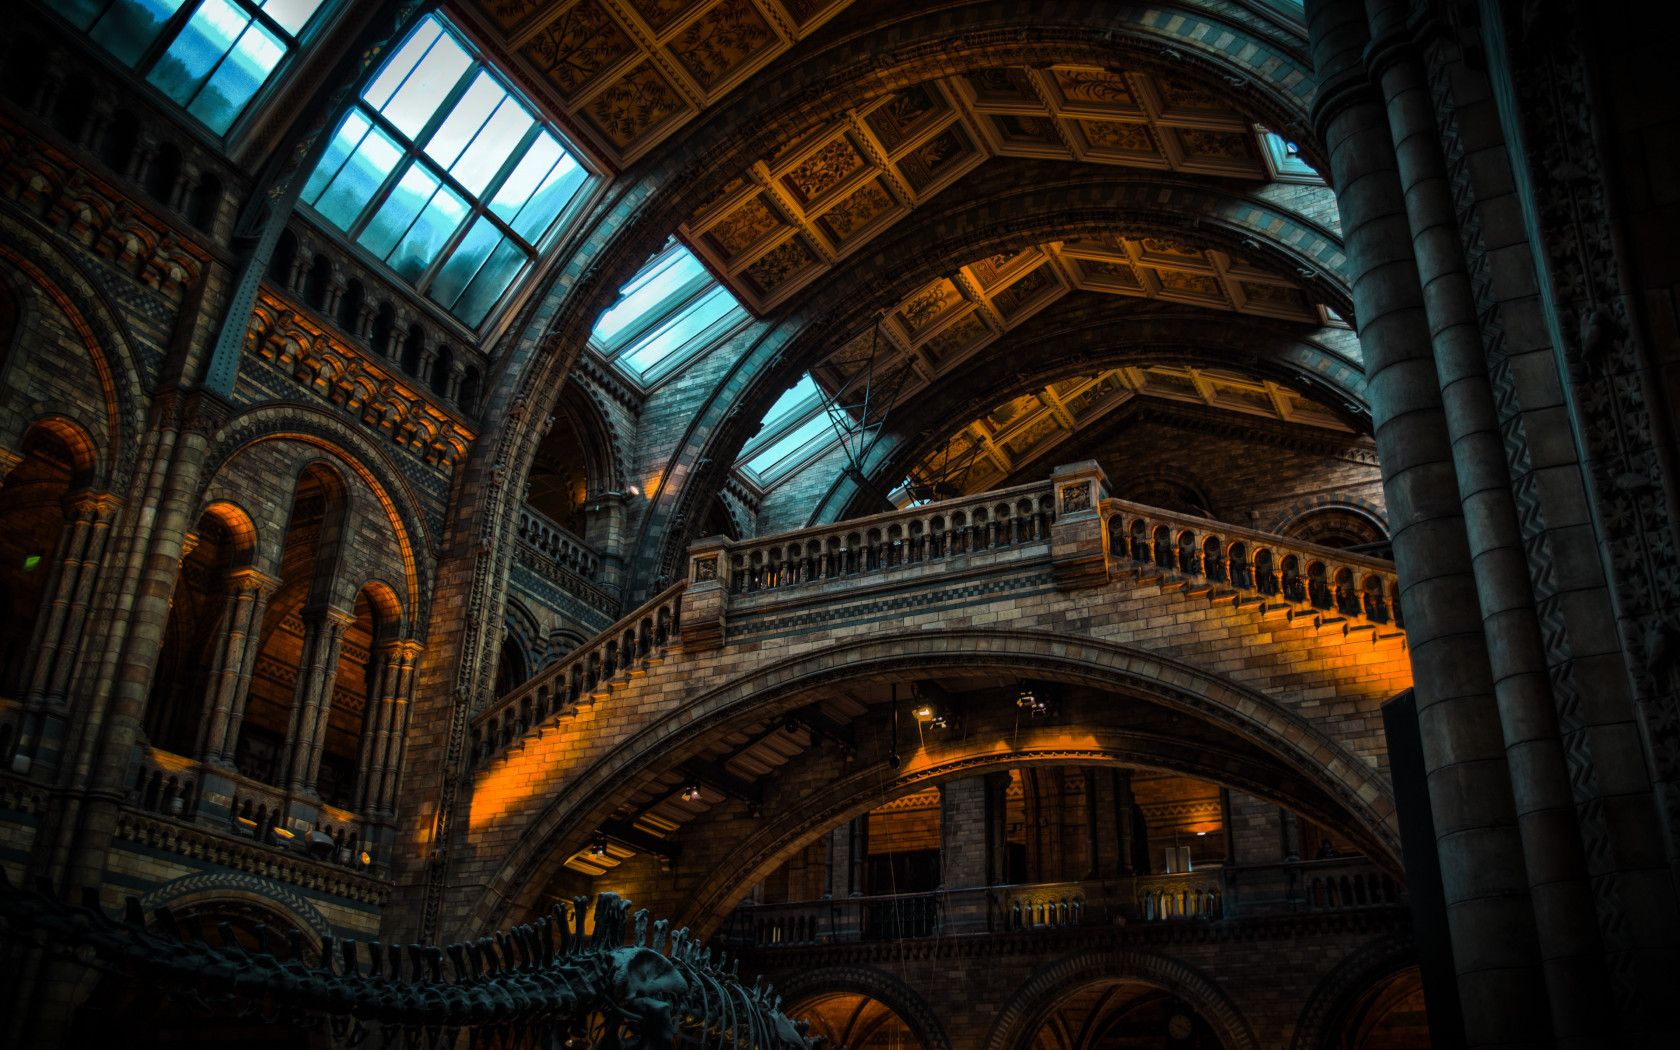 Inside of Natural History Museum from London | 1680x1050 wallpaper